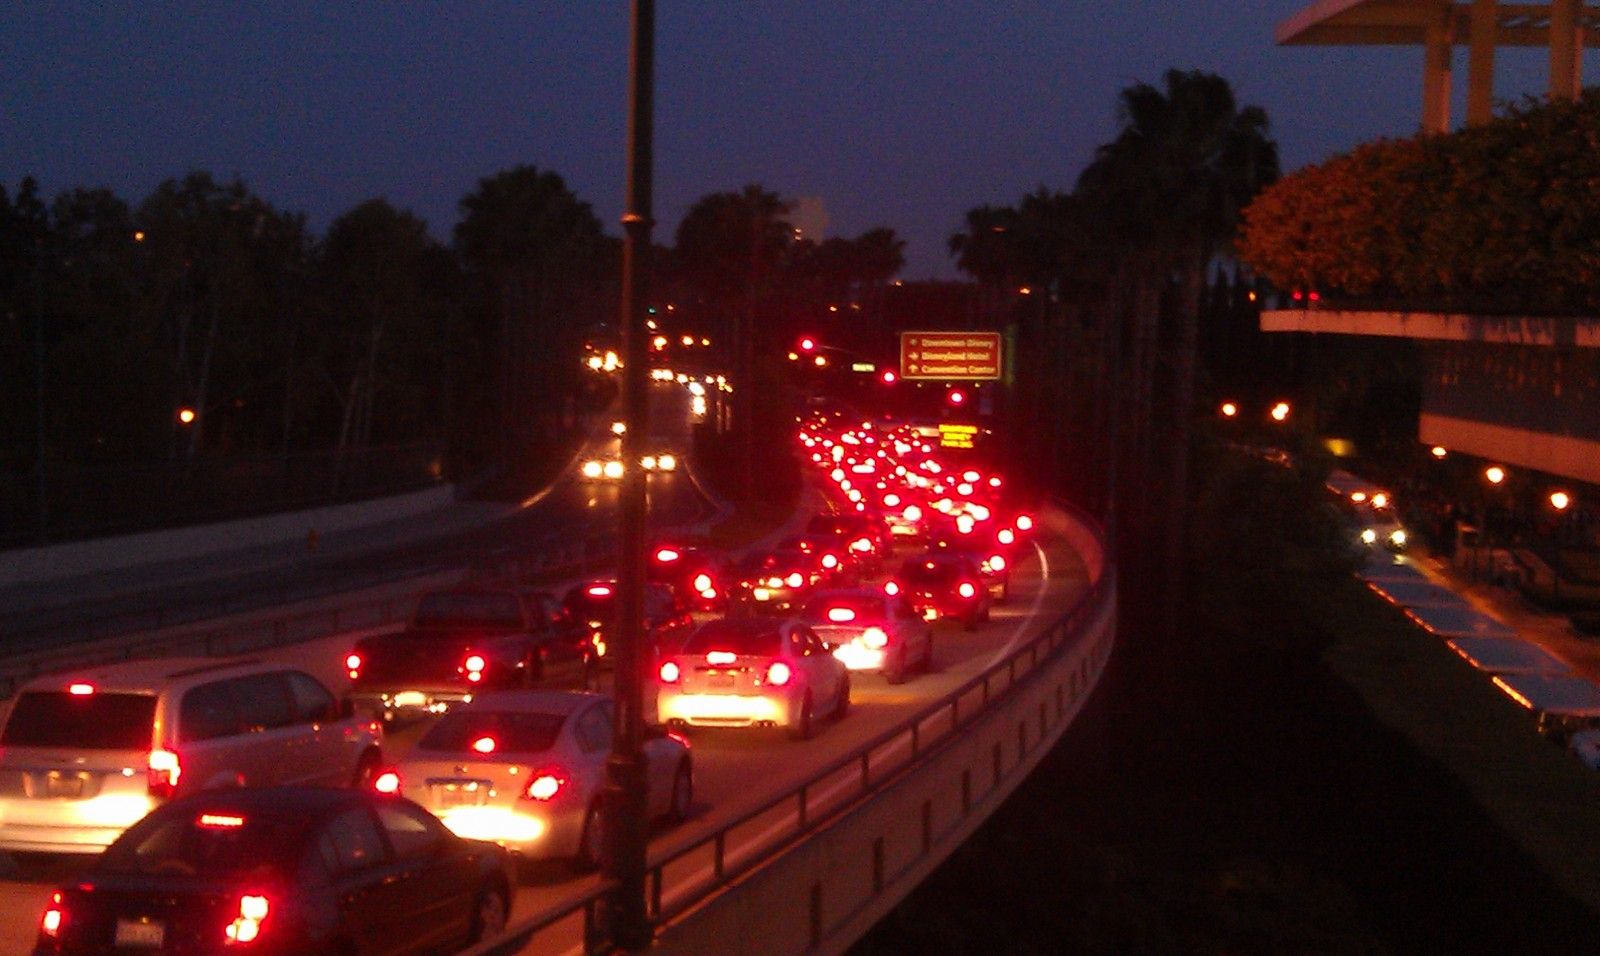 Disneyland drive resembles a parking lot.